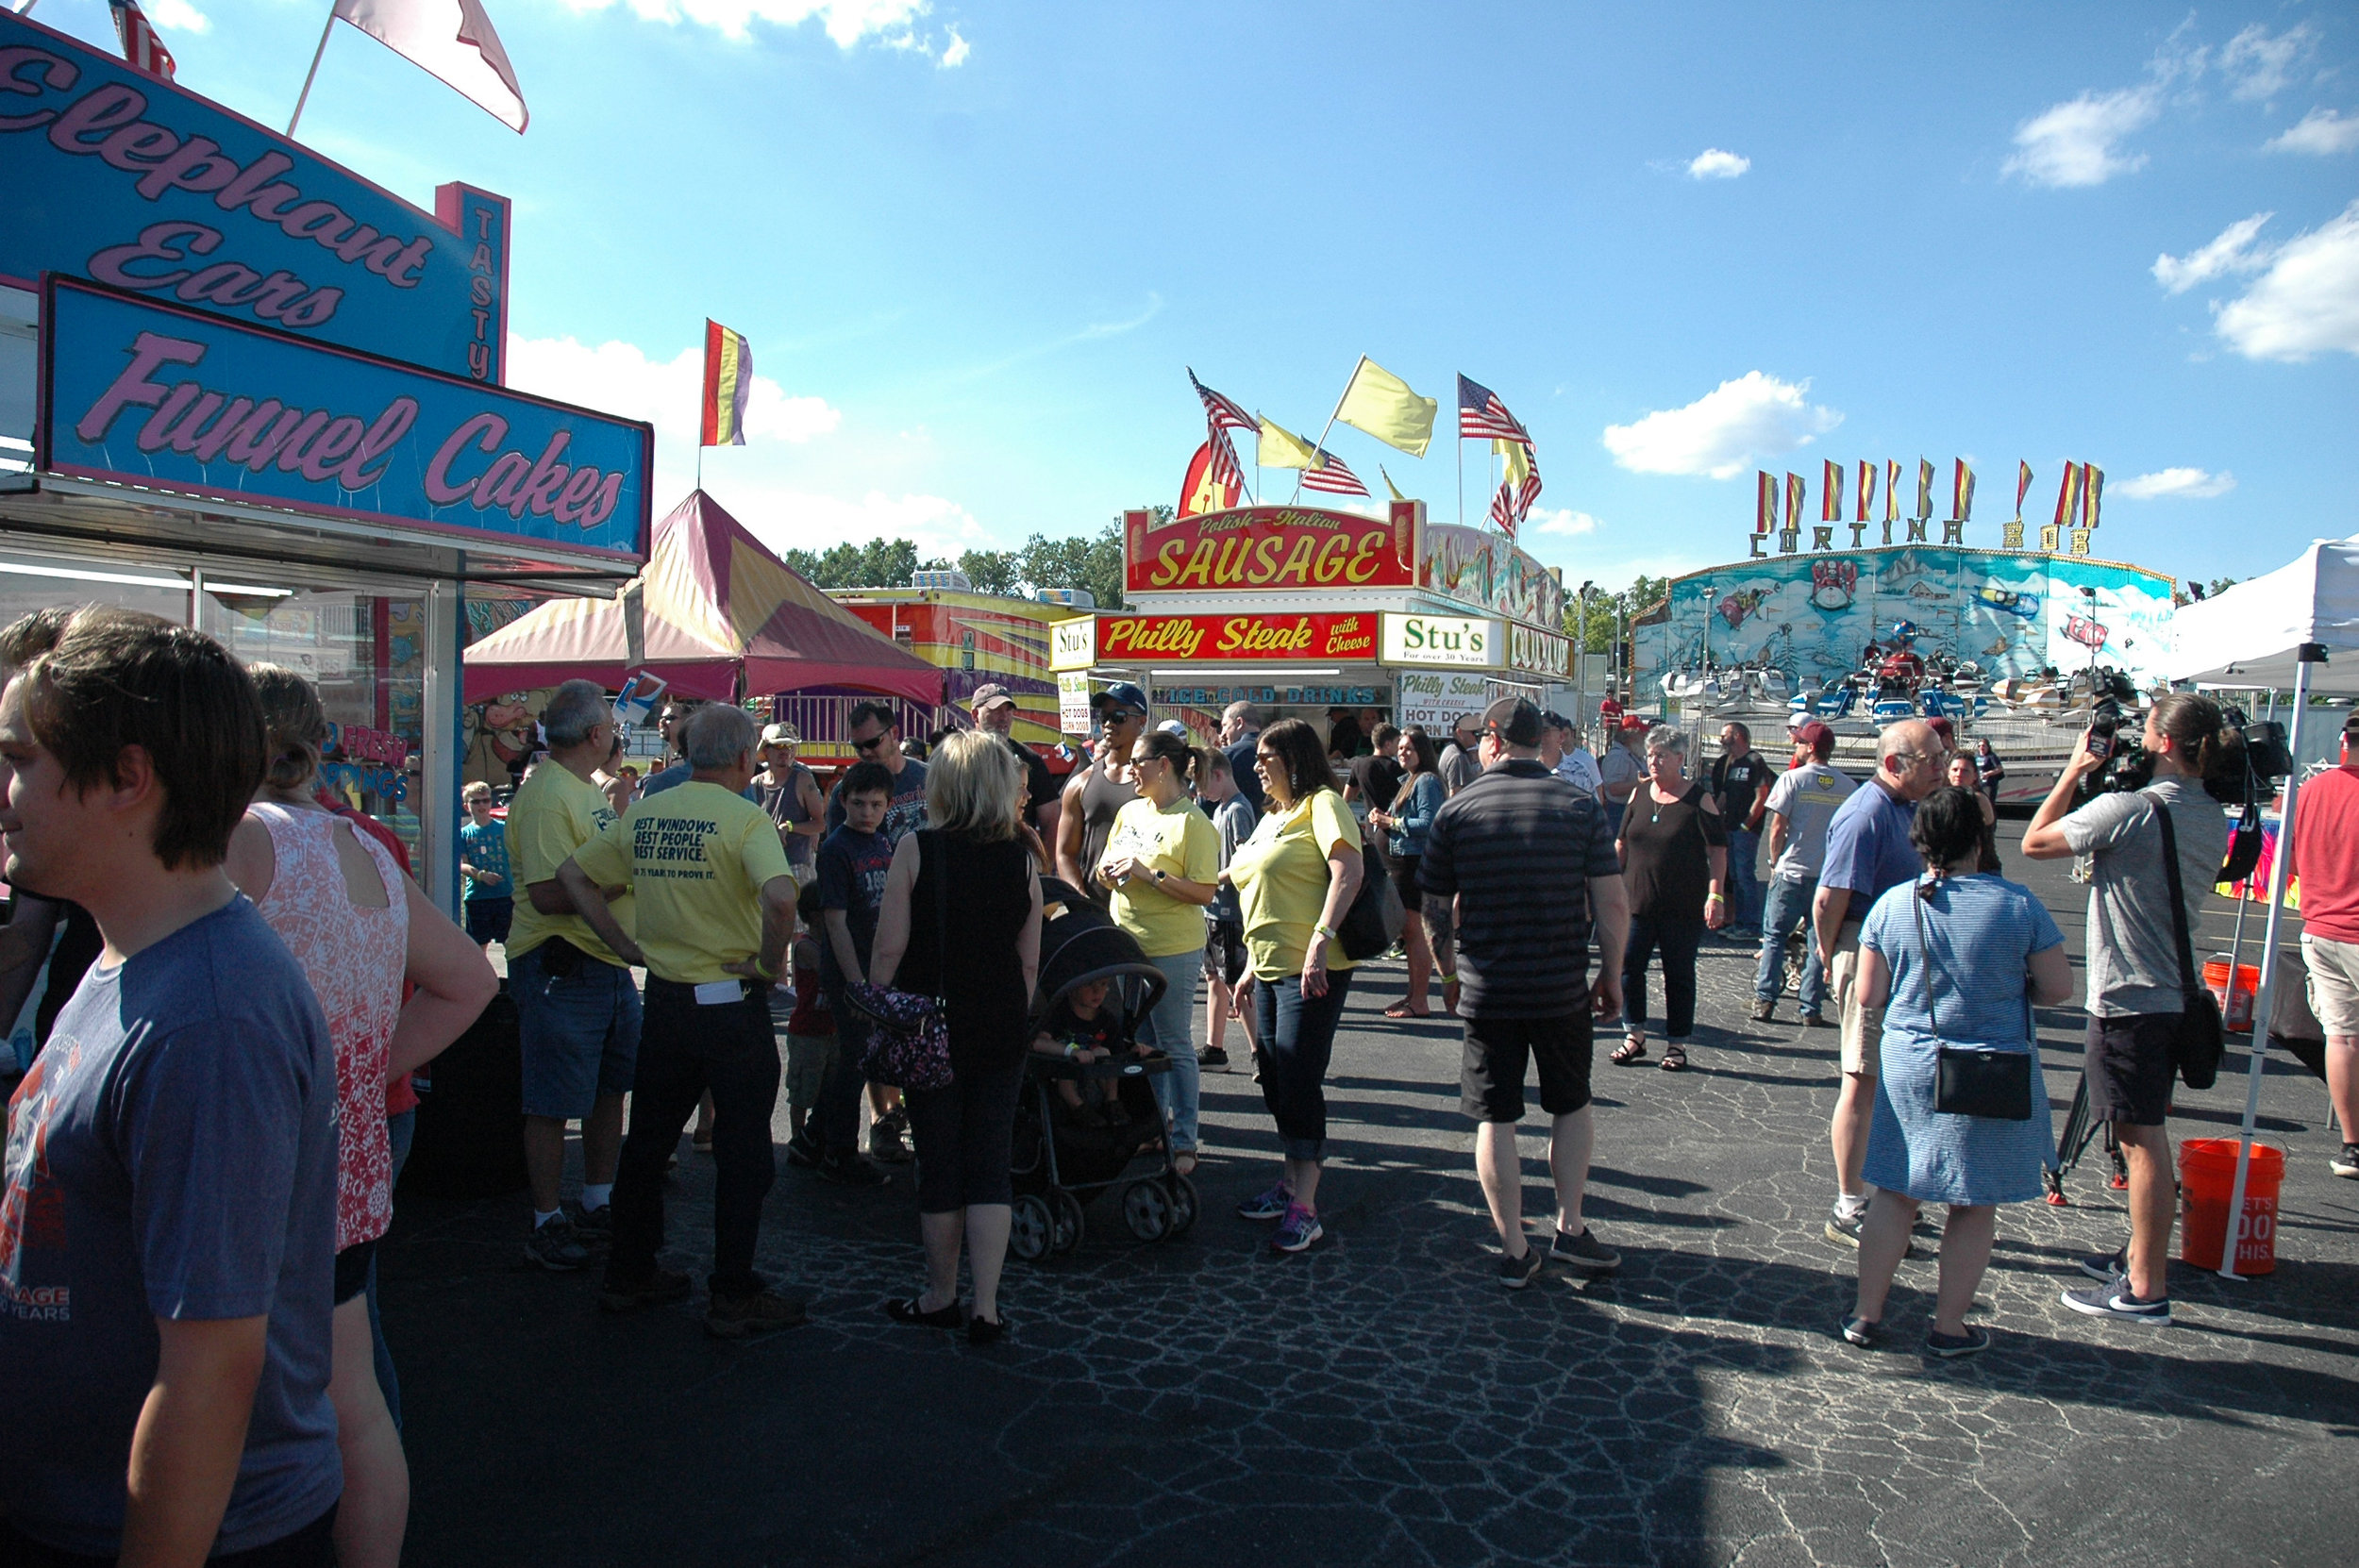 Wallside friends and families enjoyed games, rides and food at the Taylor Summer Festival this week – before it opened to the public.